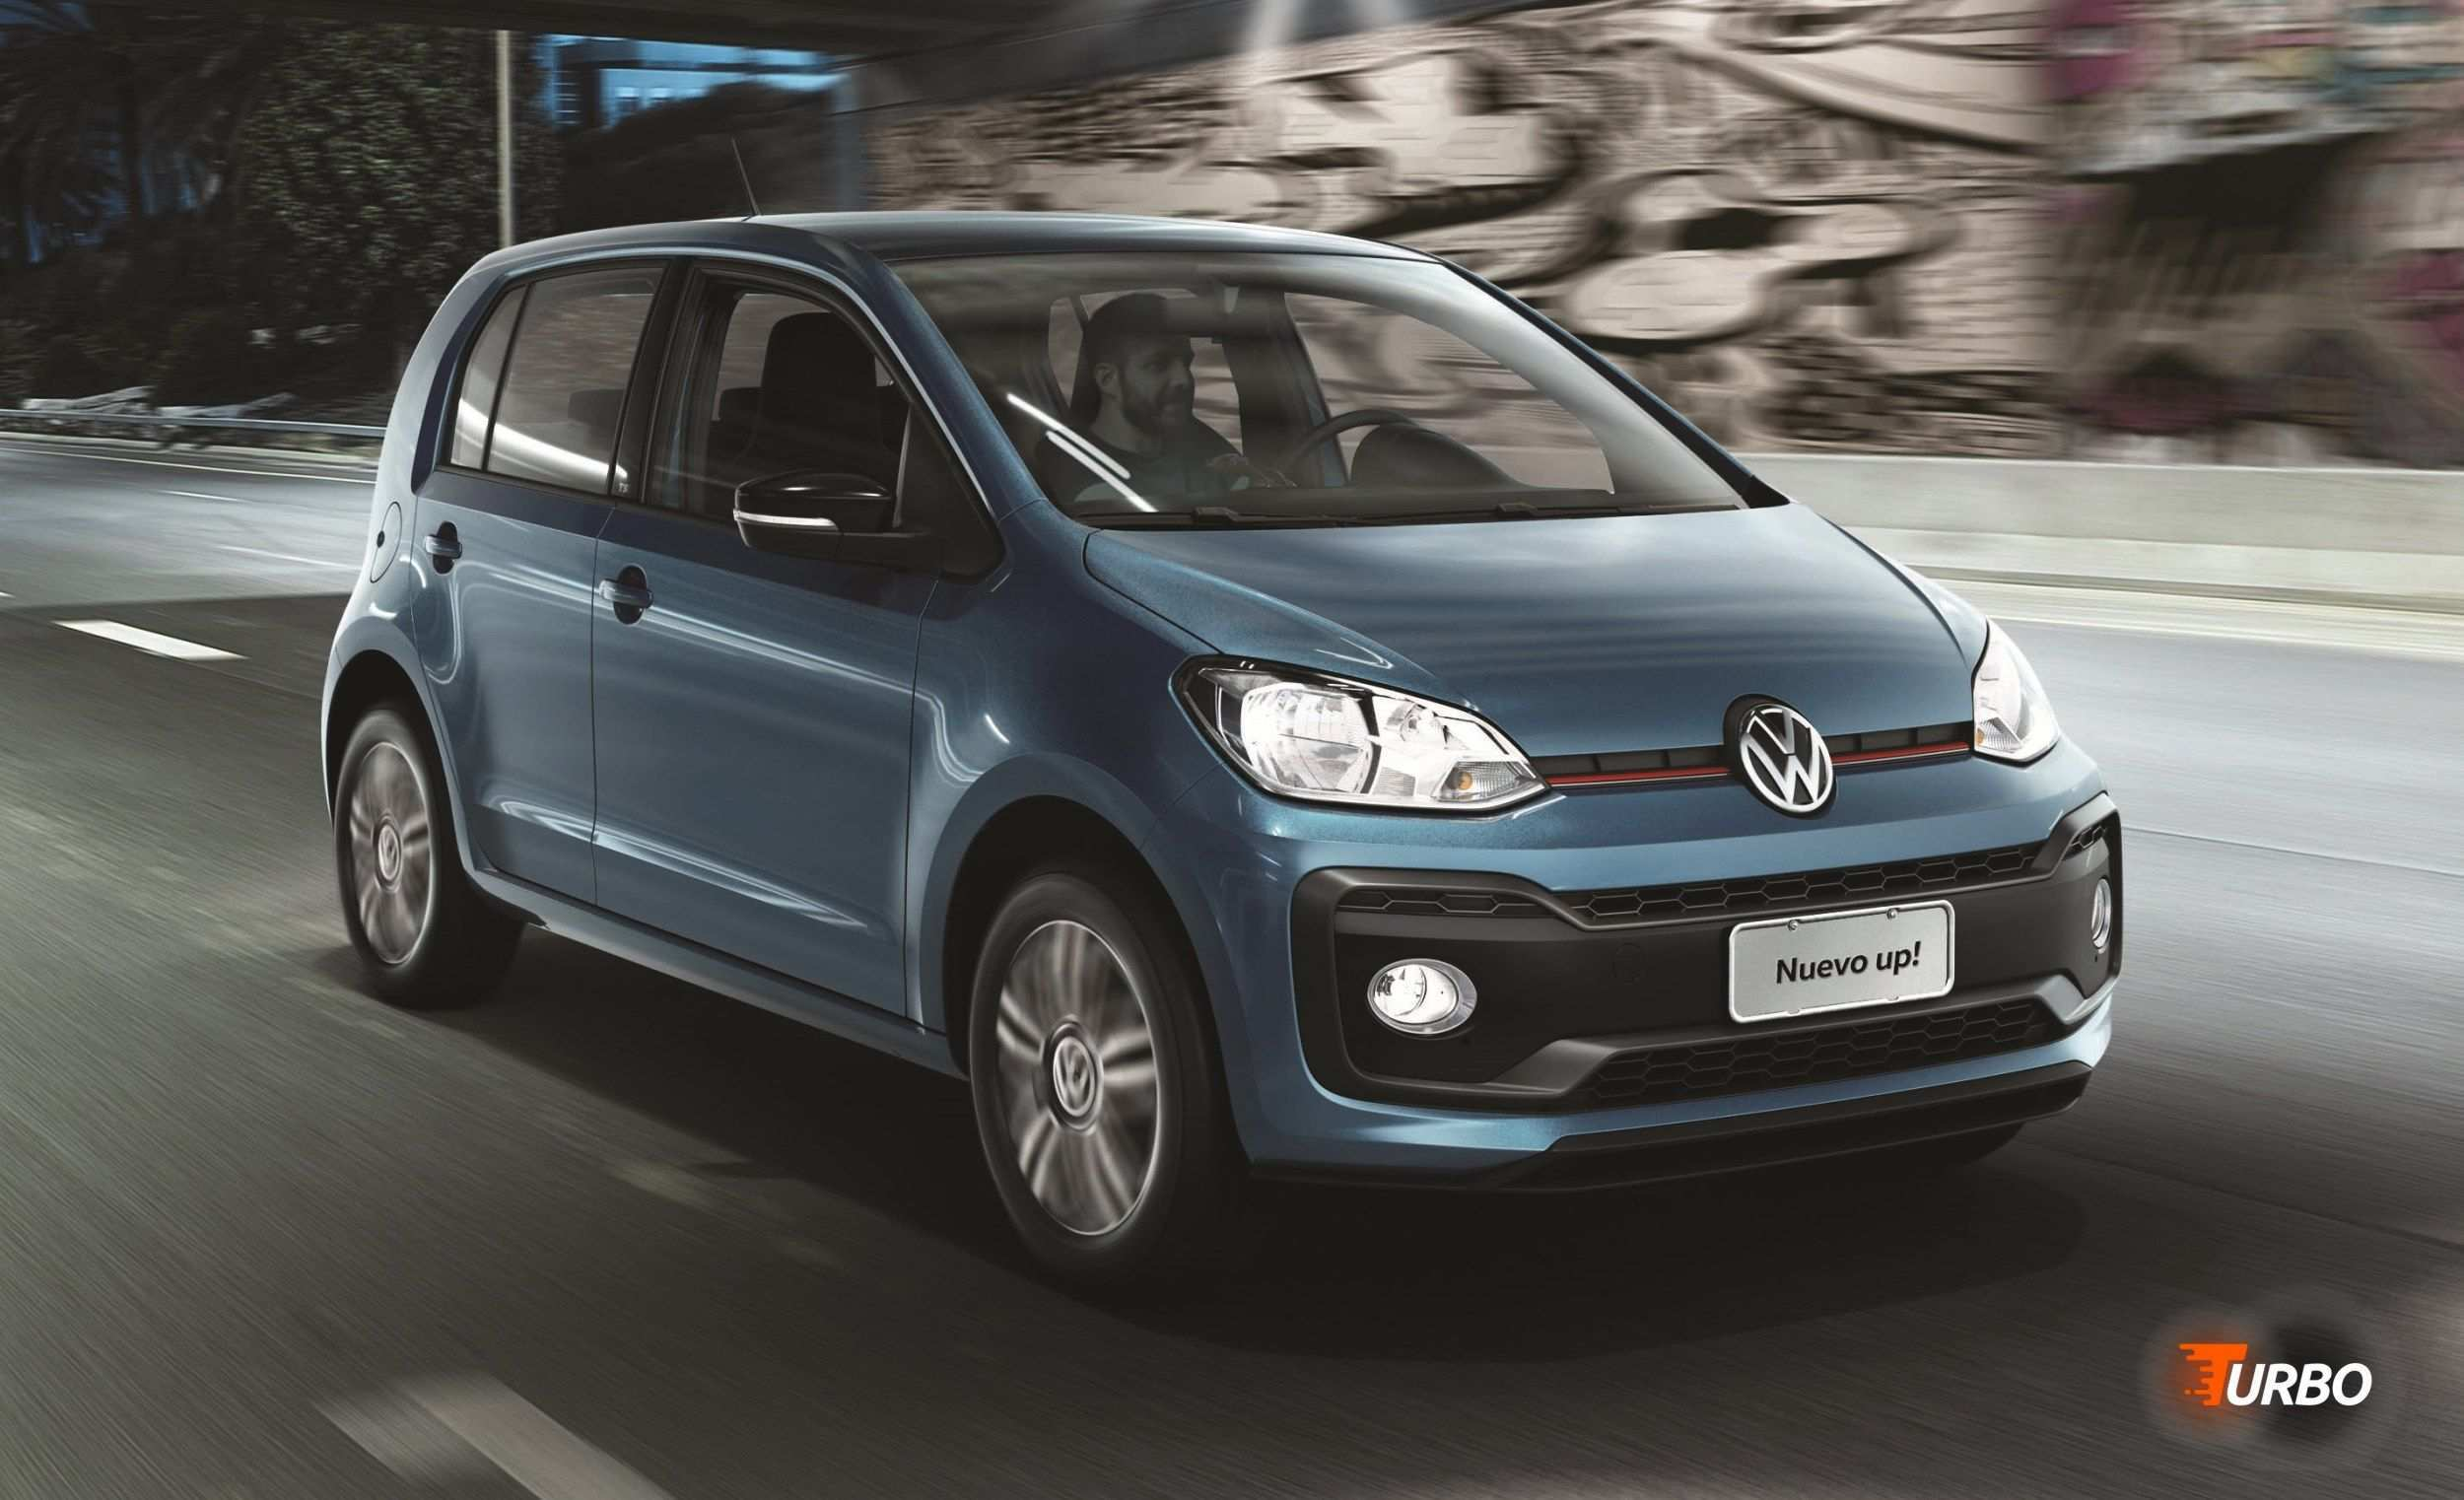 44 Best Review Vw Up 2019 Release Date for Vw Up 2019